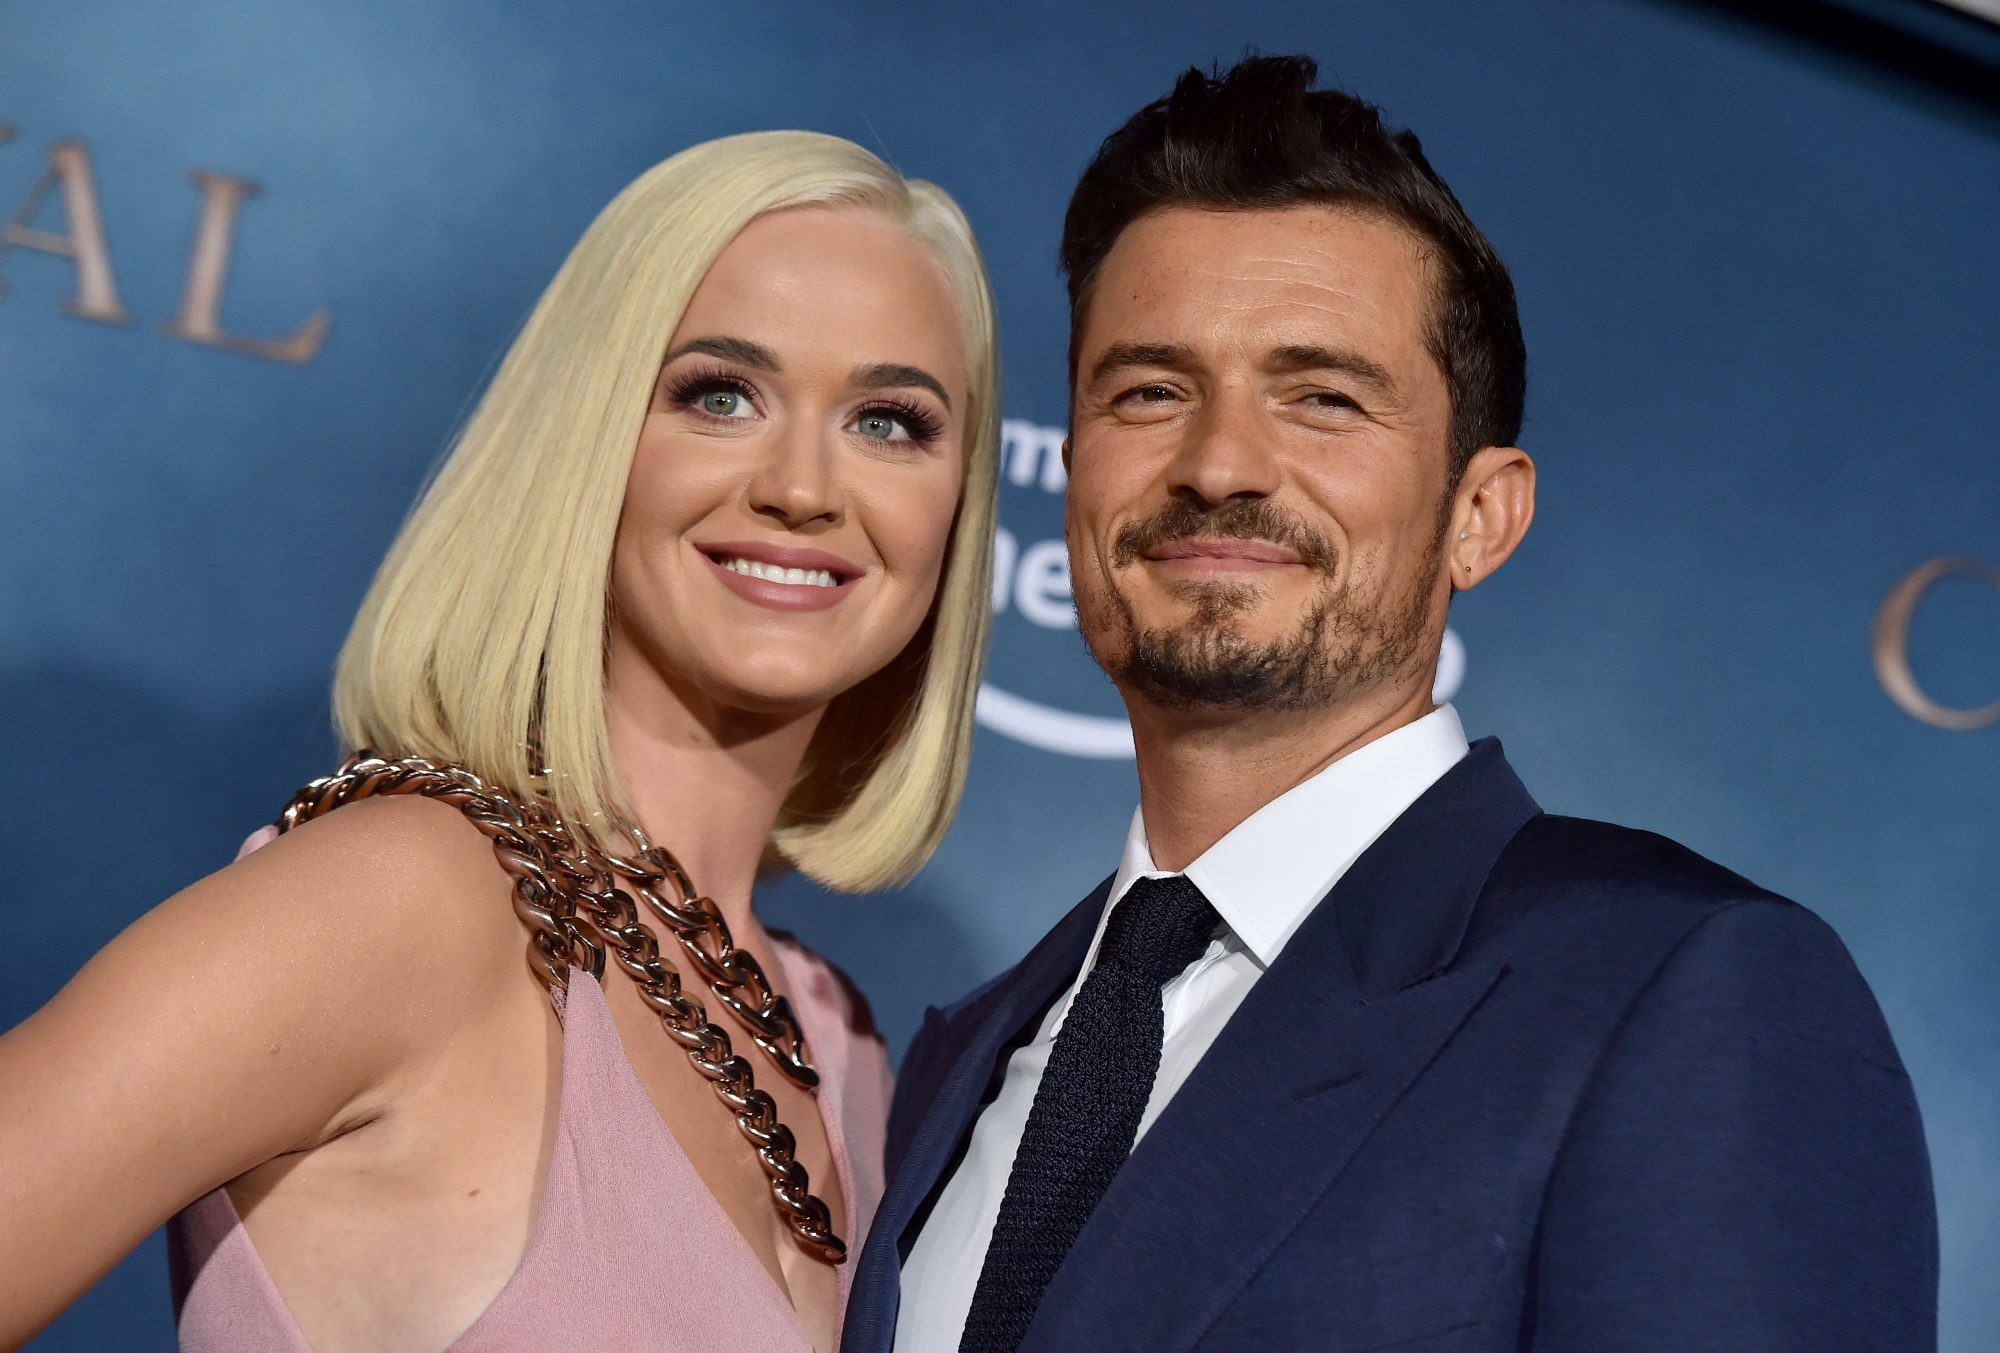 Katy Perry Orlando Bloom - LEAD